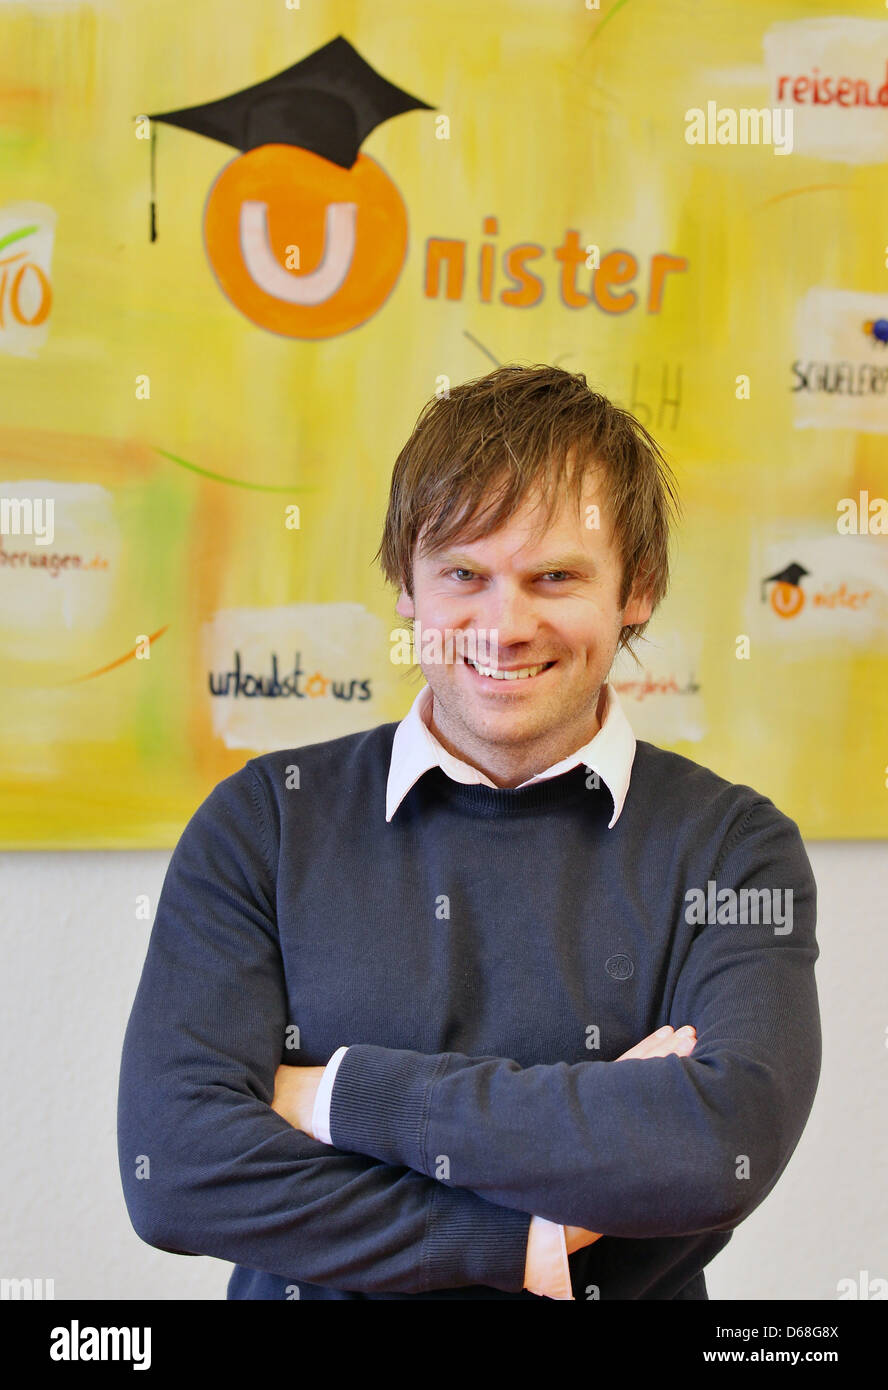 Thomas Wagner, head of theLeipzig company Unister, poses in Leipzig, Germany, 13 July 2012. Unister holding - Stock Image